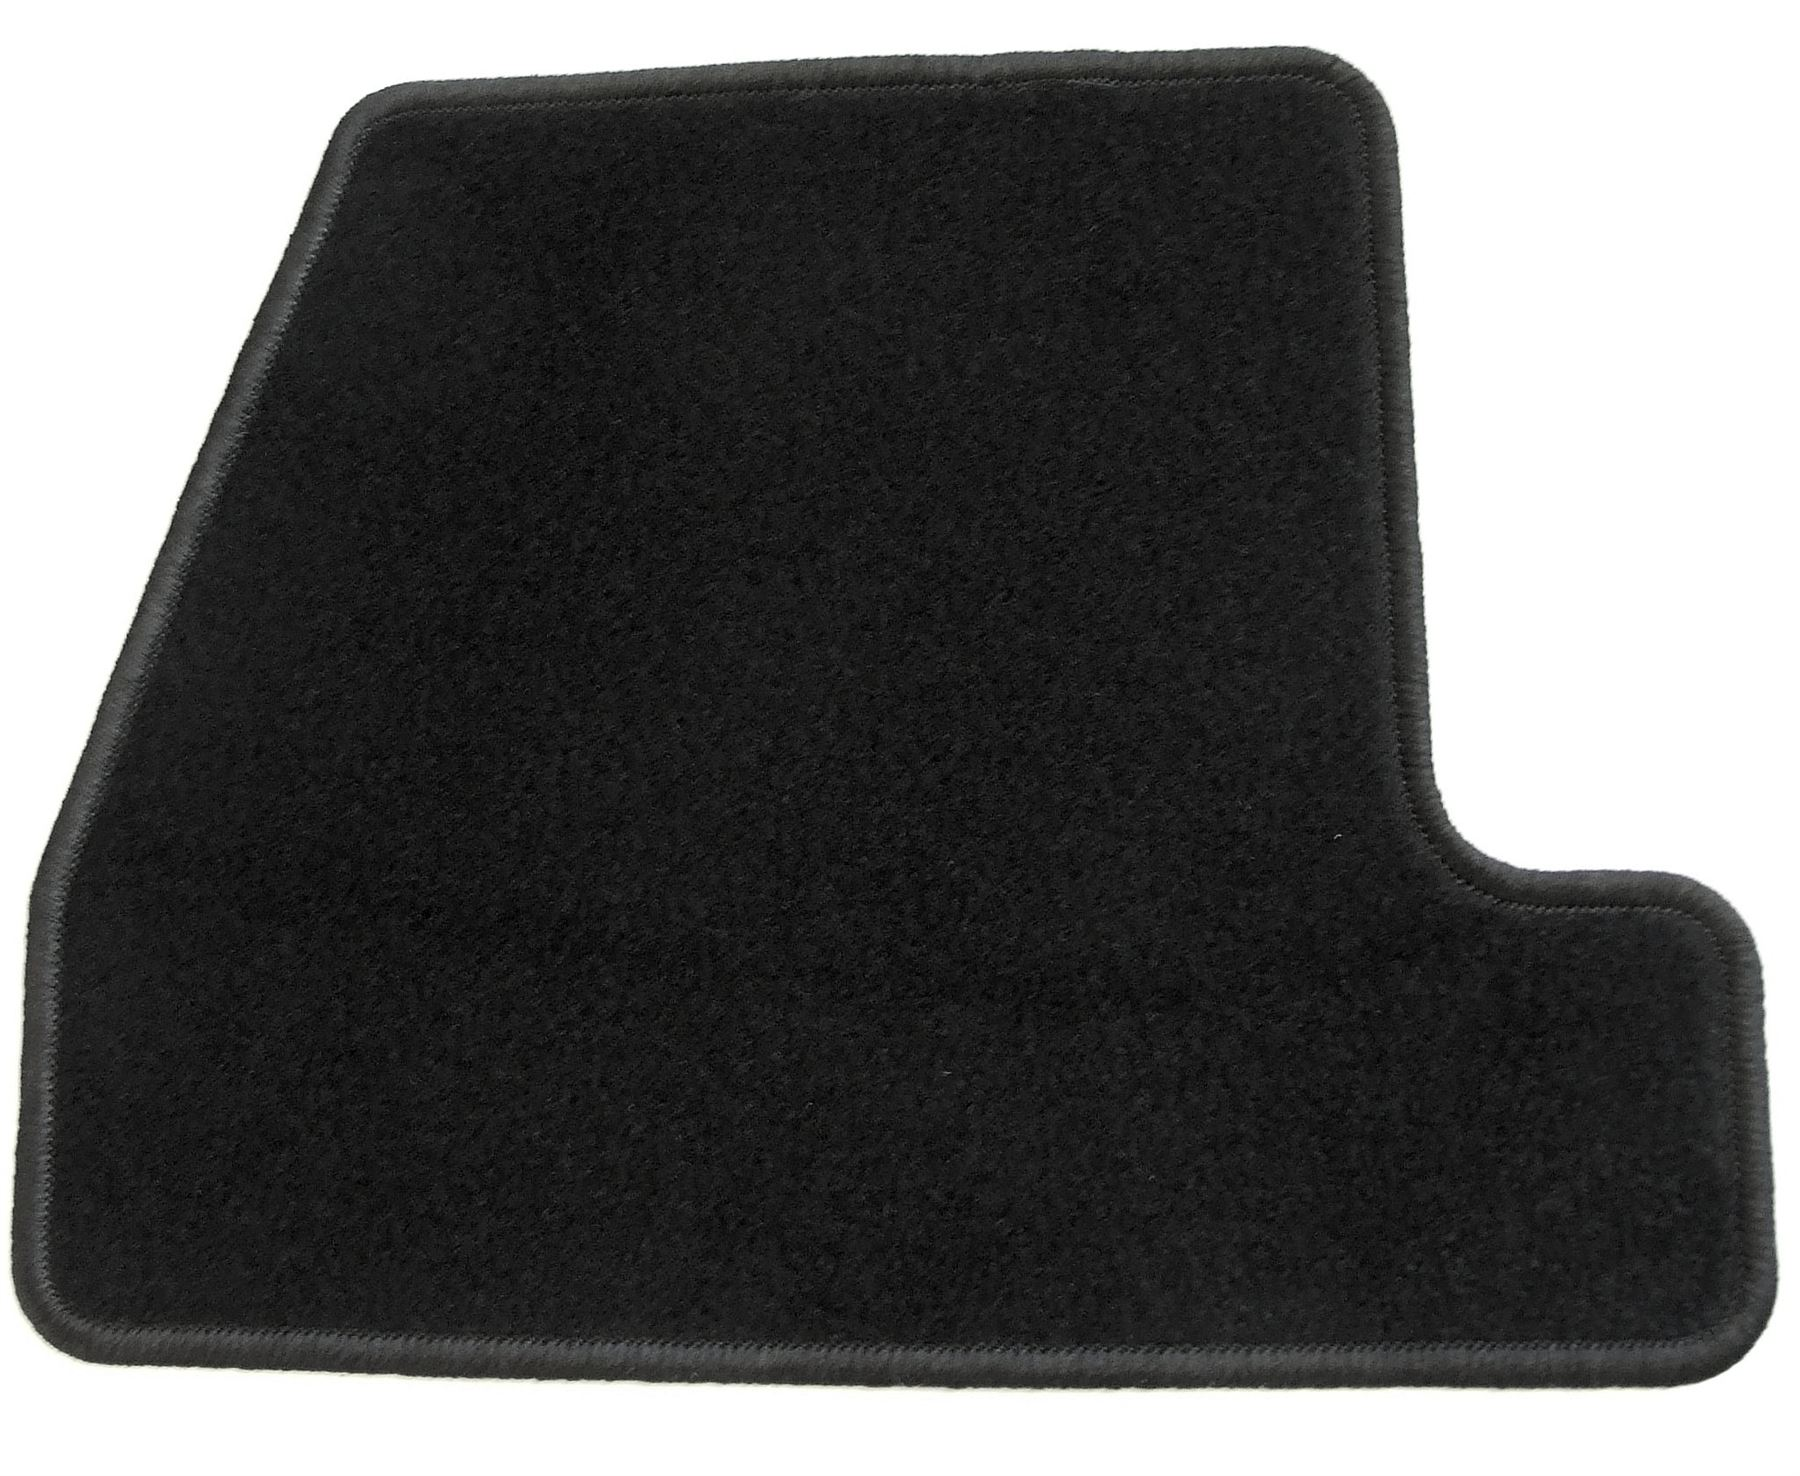 Ford 1719616 Genuine Front and Rear Carpet Mats